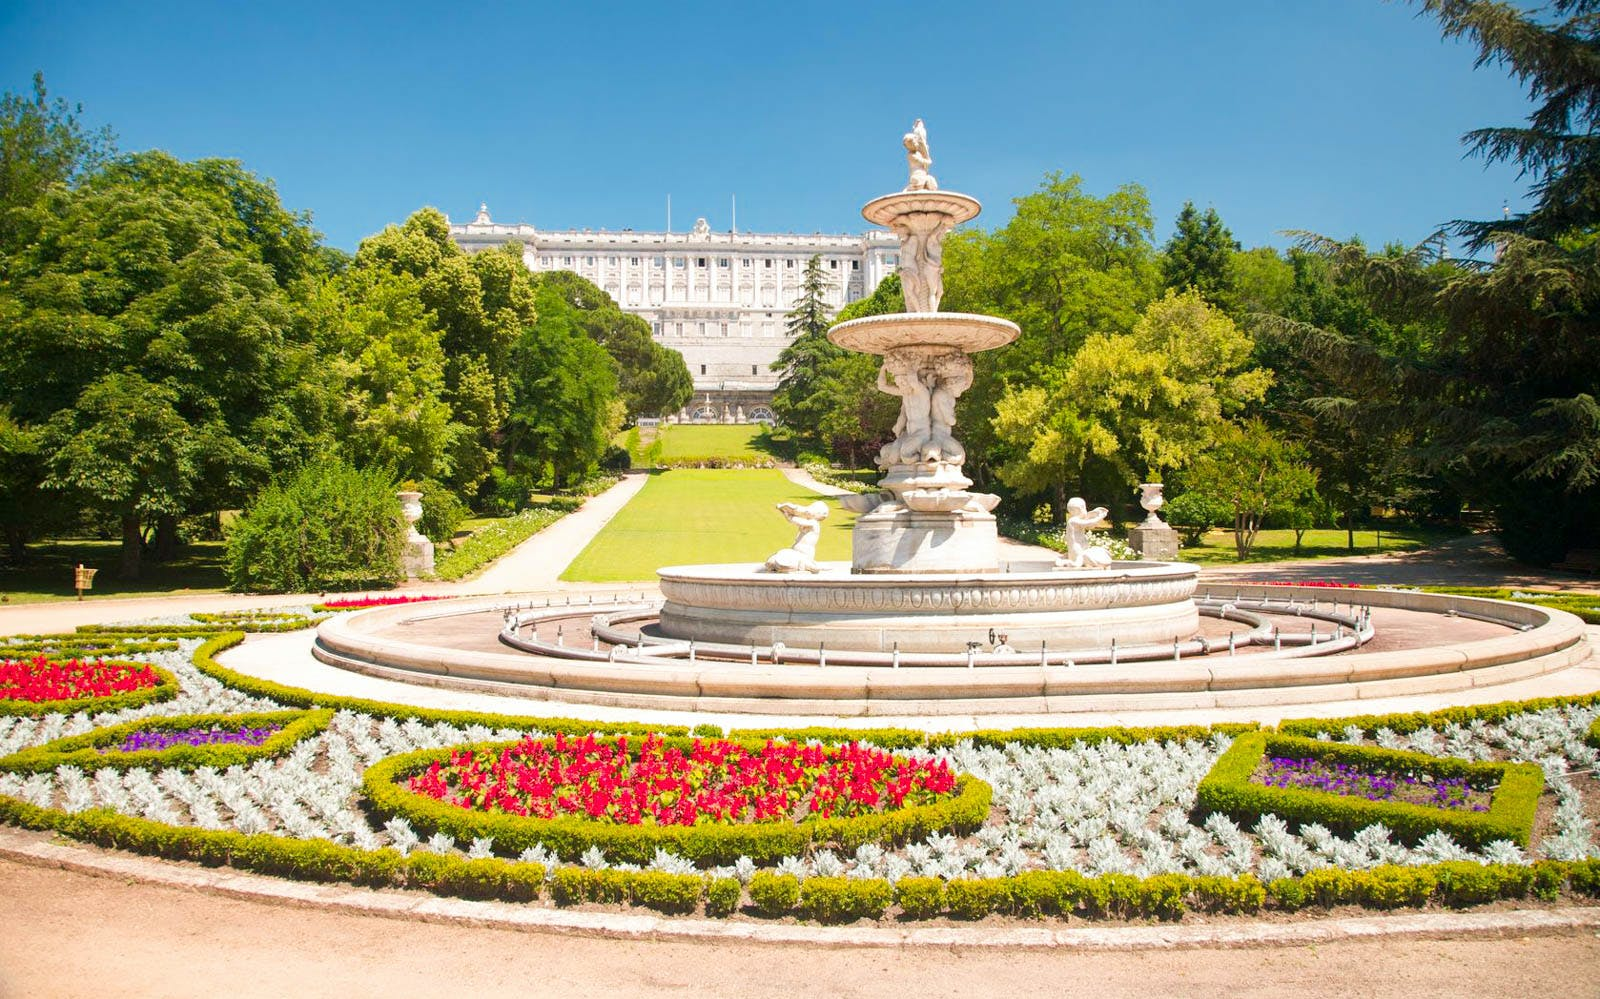 Your Madrid Royal Palace Tour Options